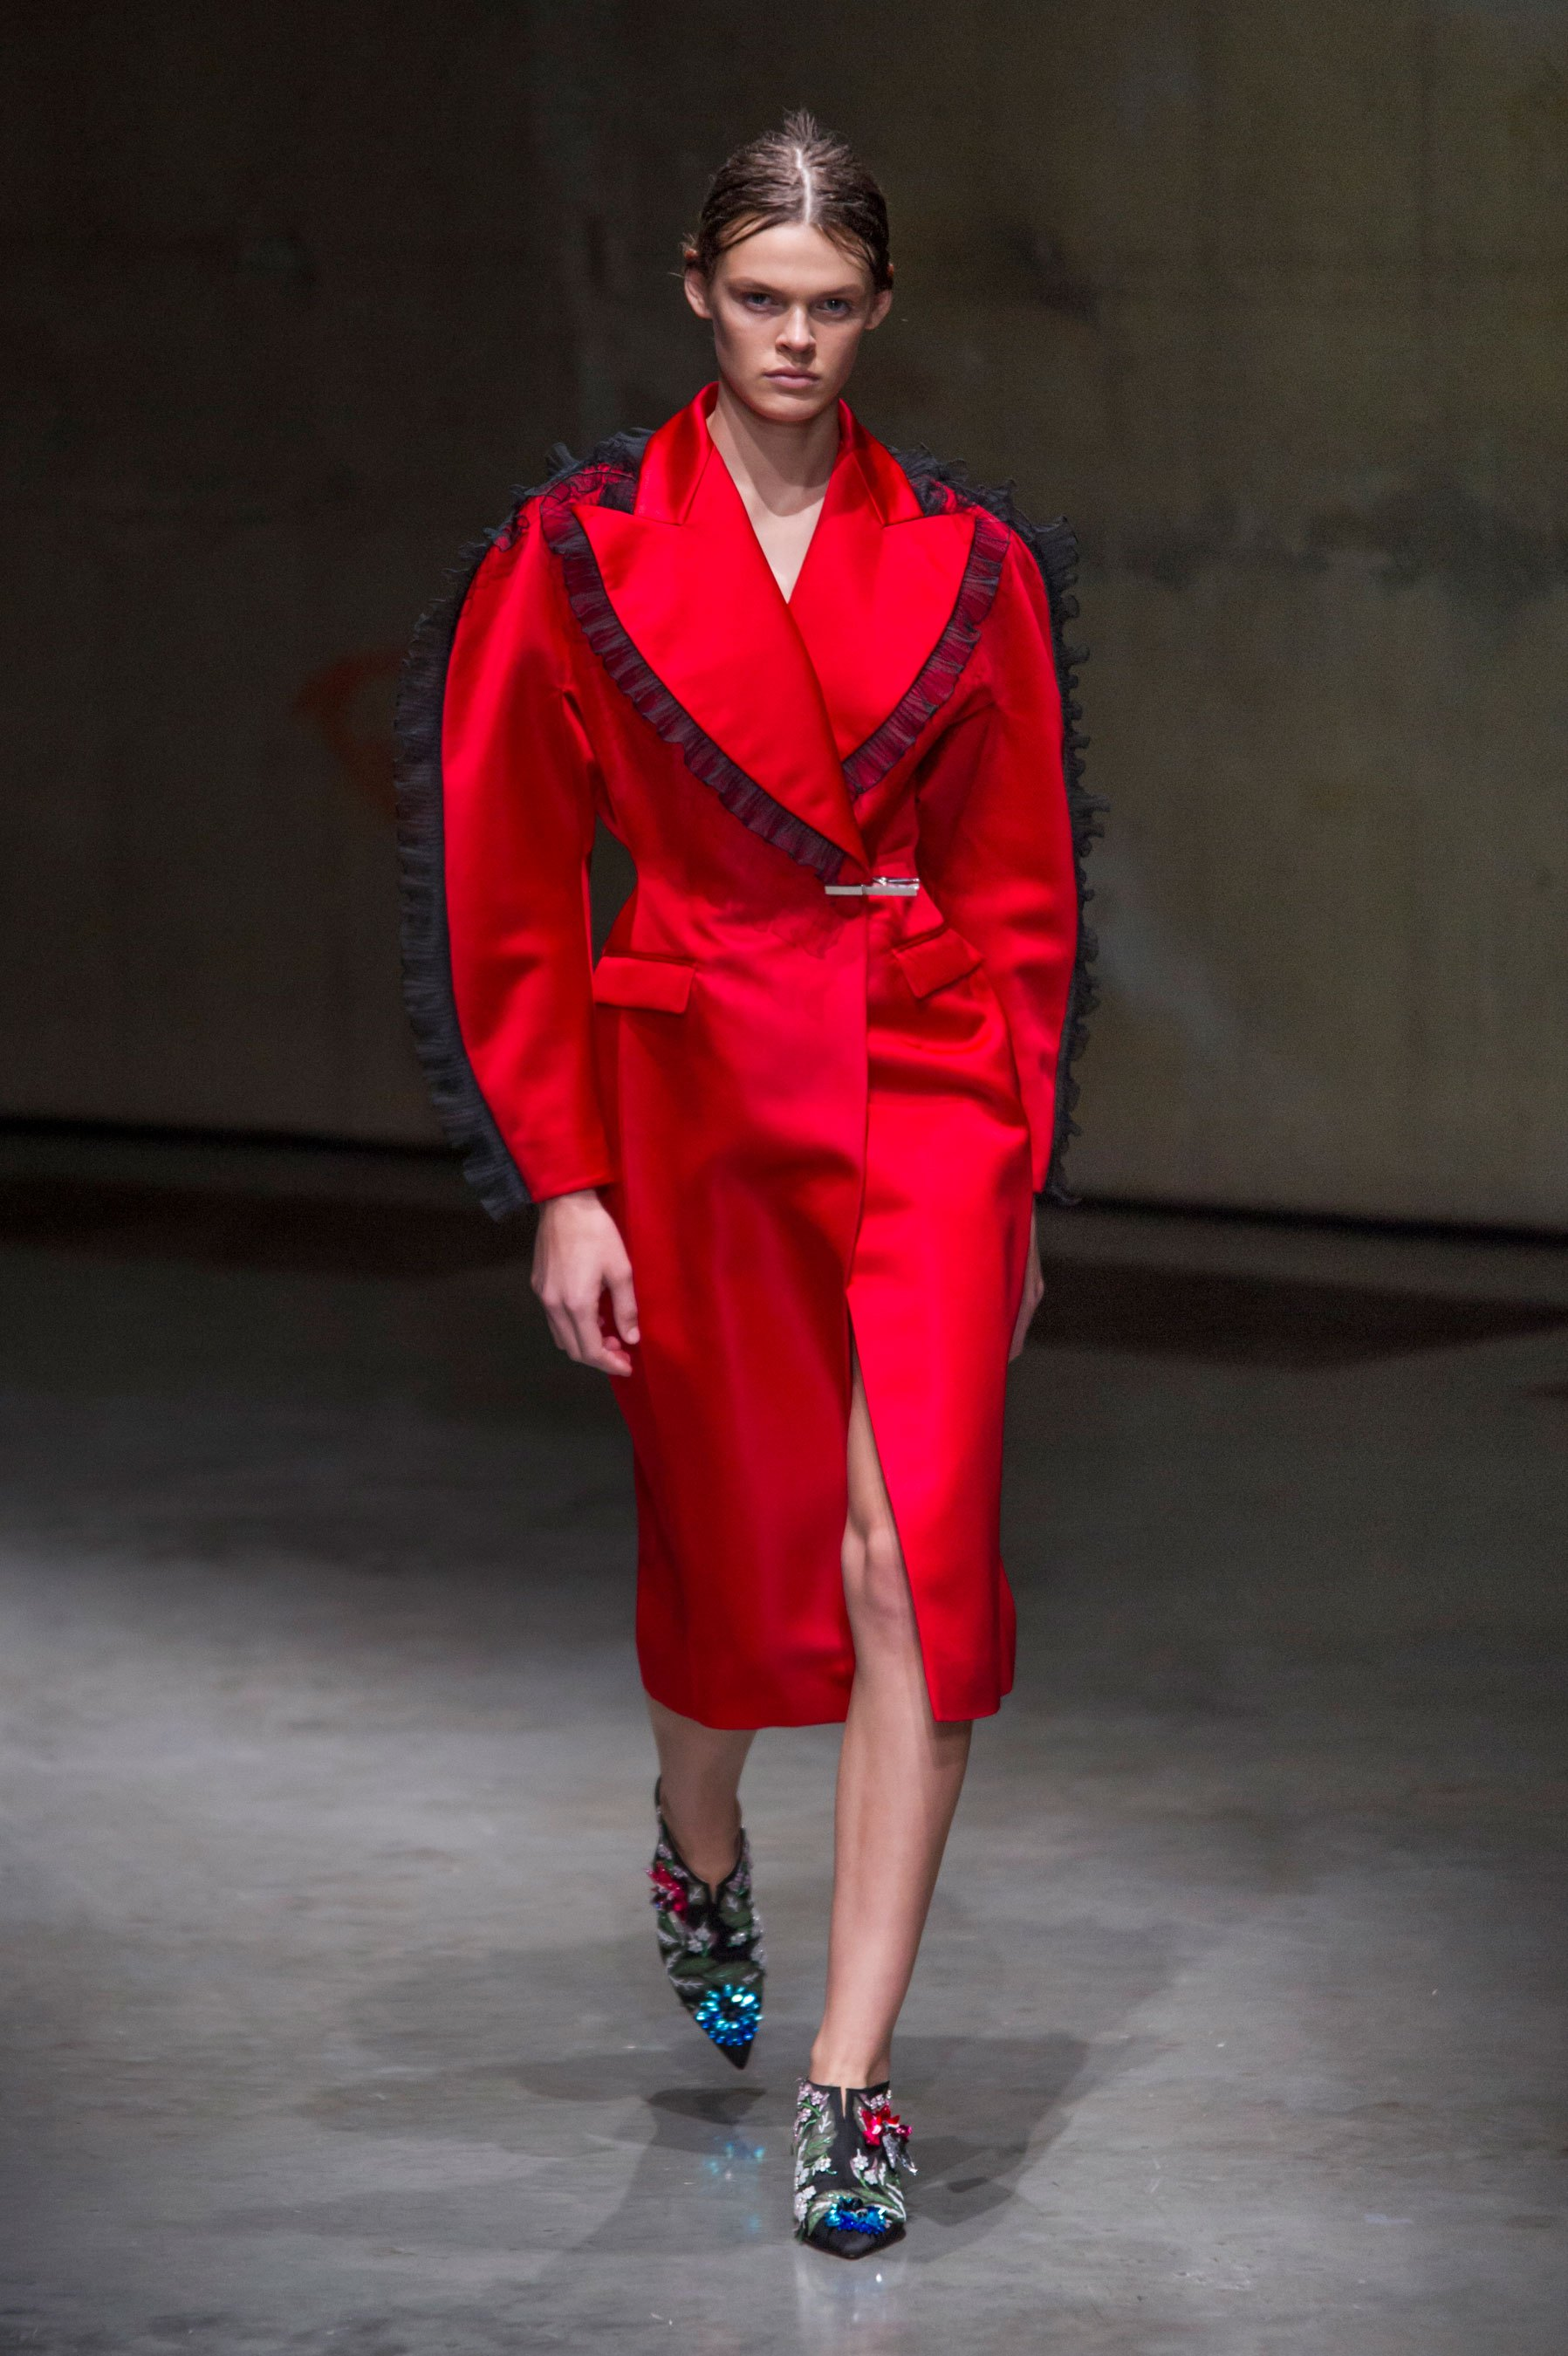 Silhouettes - High Waisted & Puff Fashion Trend Spring 2018